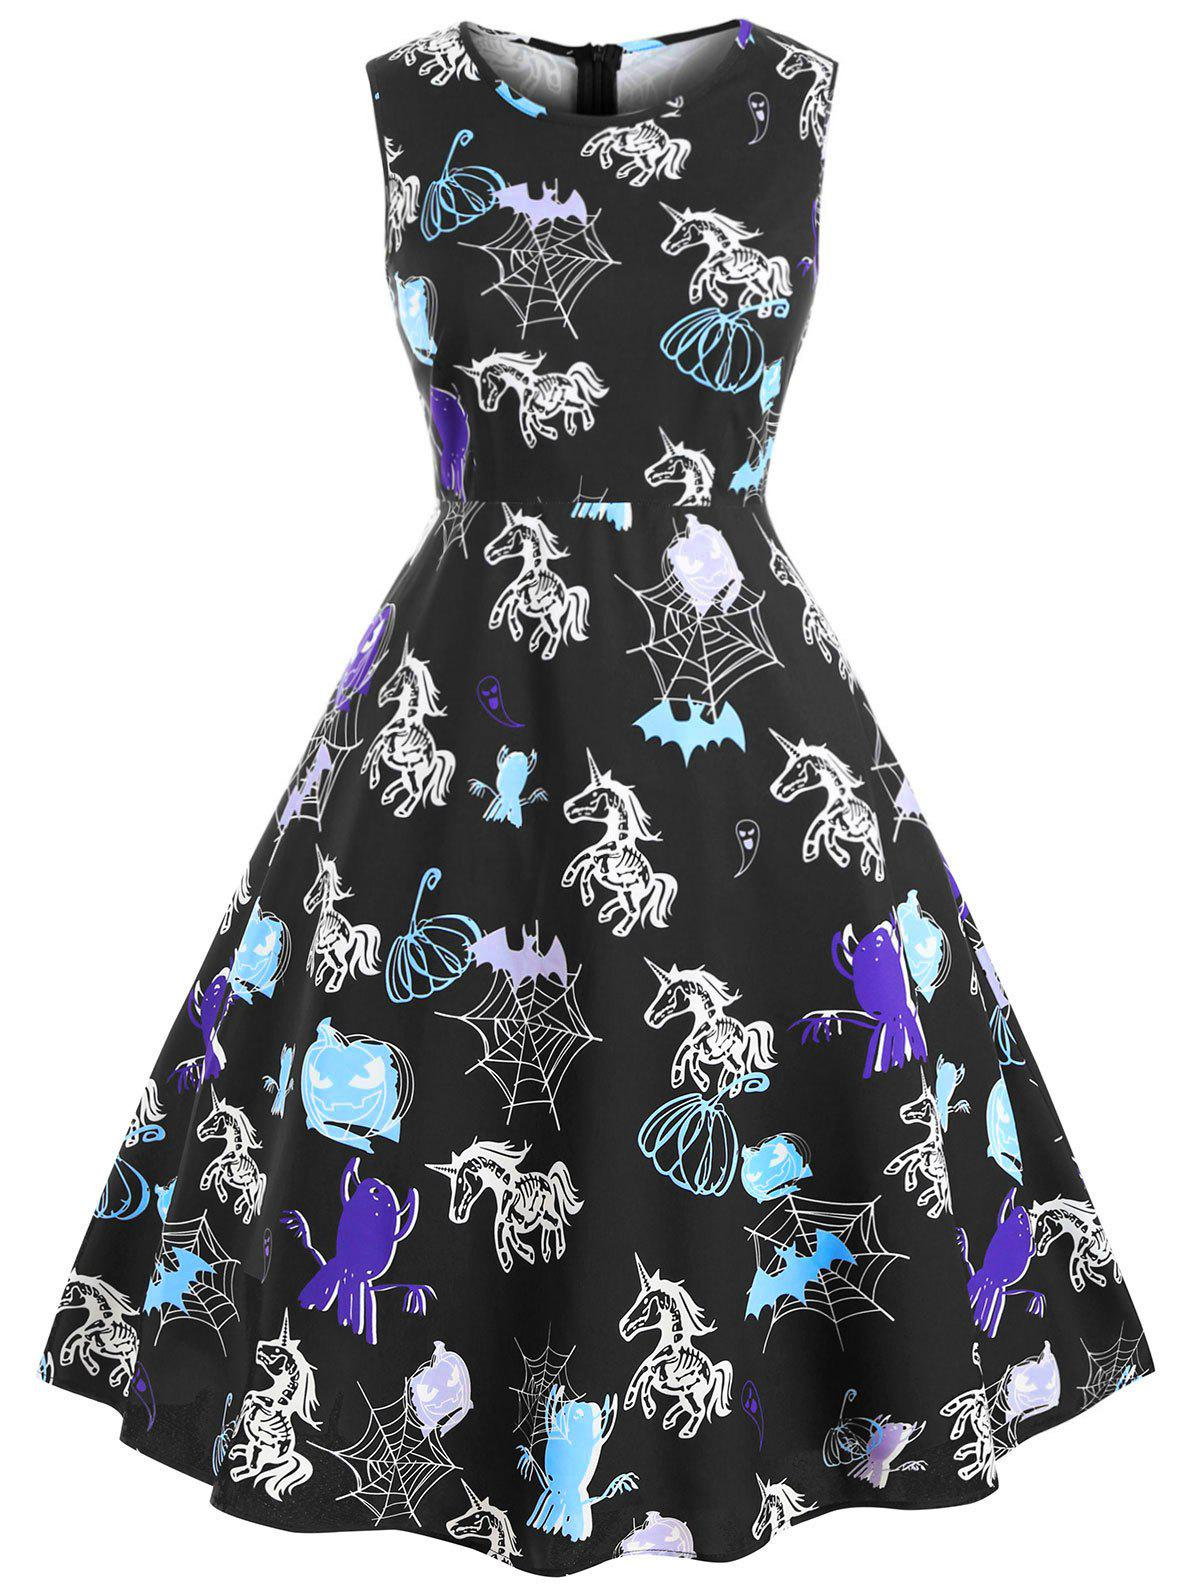 Shop Plus Size Vintage Printed Halloween Party Dress